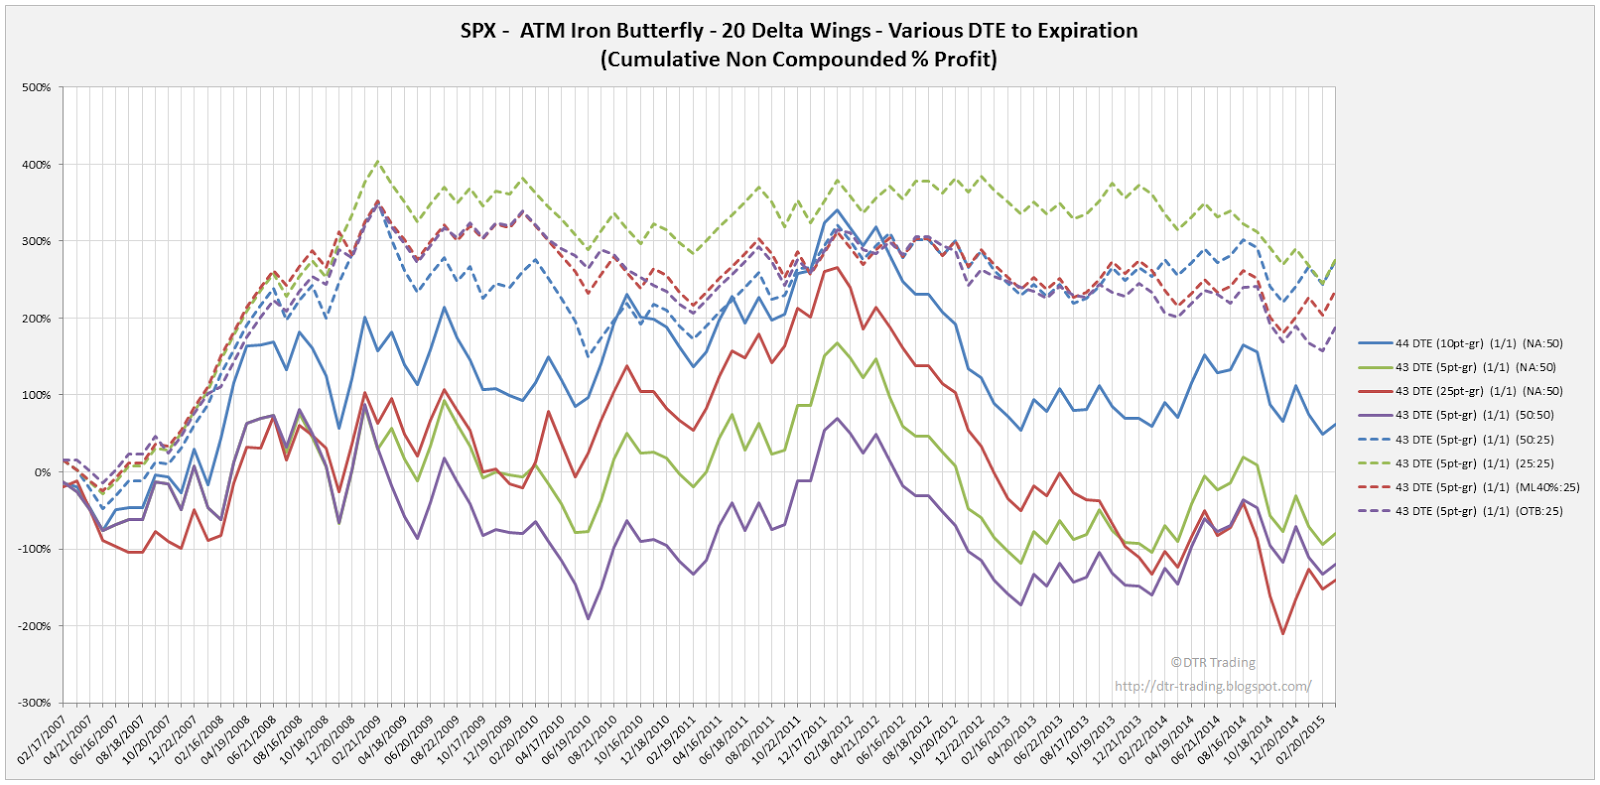 Iron Butterfly Dynamic Exit Equity Curves SPX 43 DTE 20 Delta Wing Widths